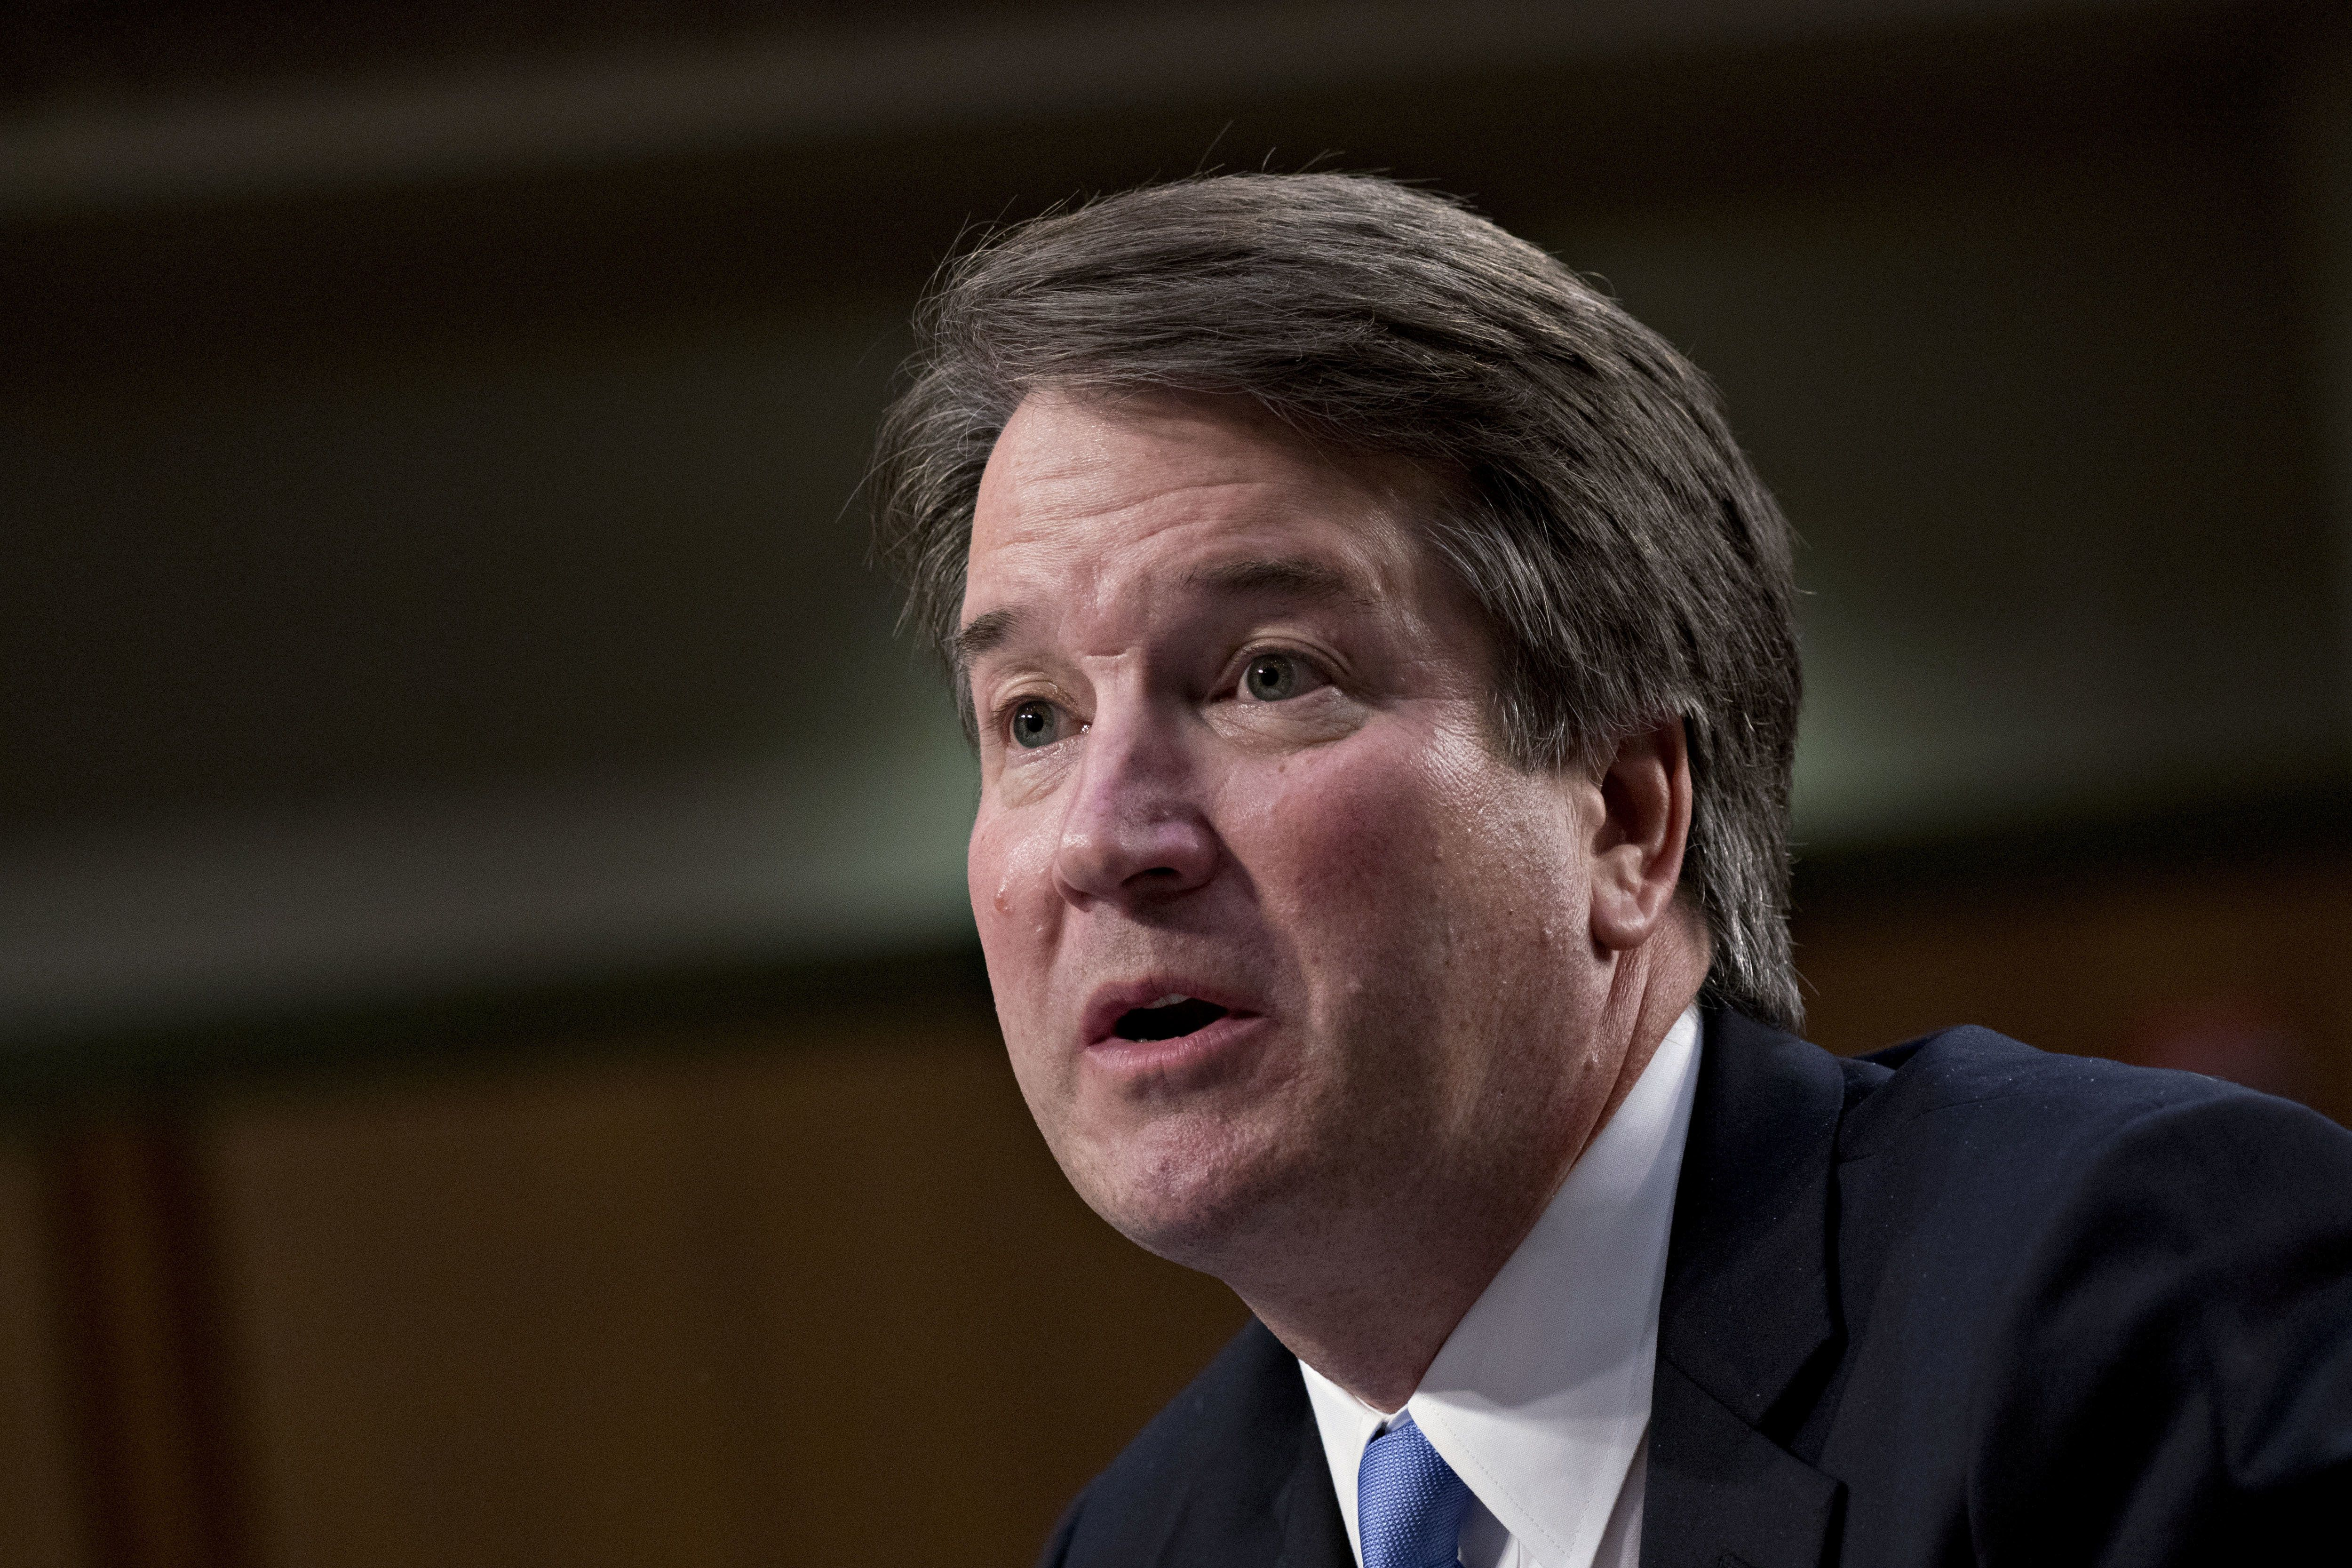 Supreme Court nominee is due to appear before the Senate Judiciary Committee on Thursday along with Christine Blasey Ford, wh